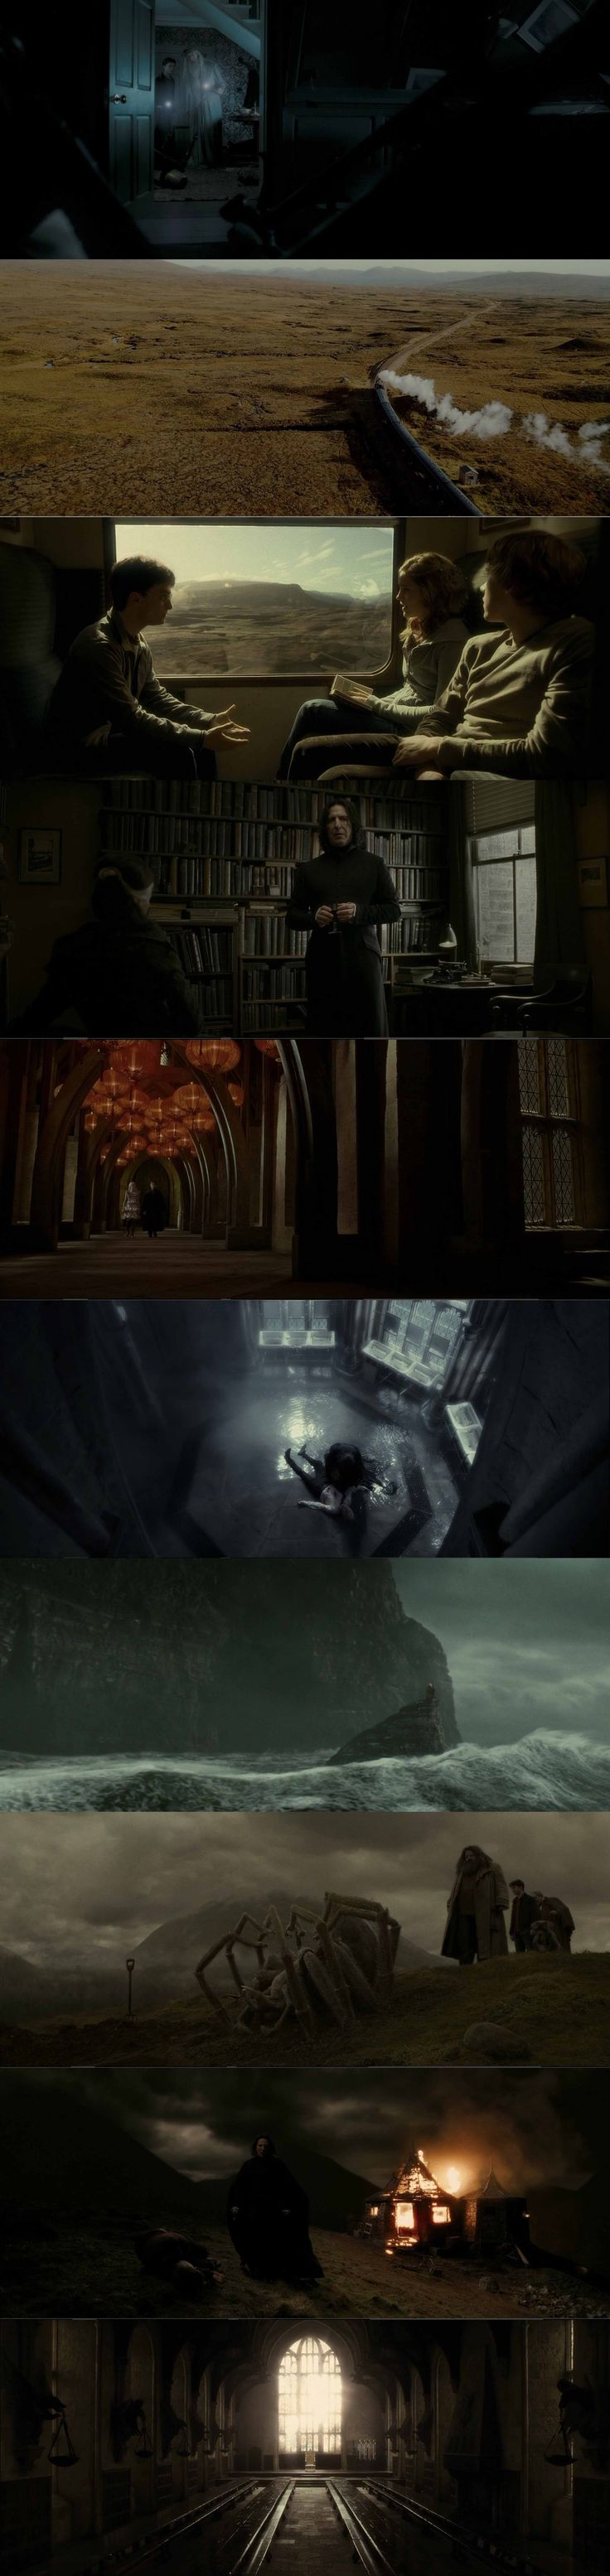 Harry Potter & The Half Blood Prince Cinematography by Bruno Delbonnel